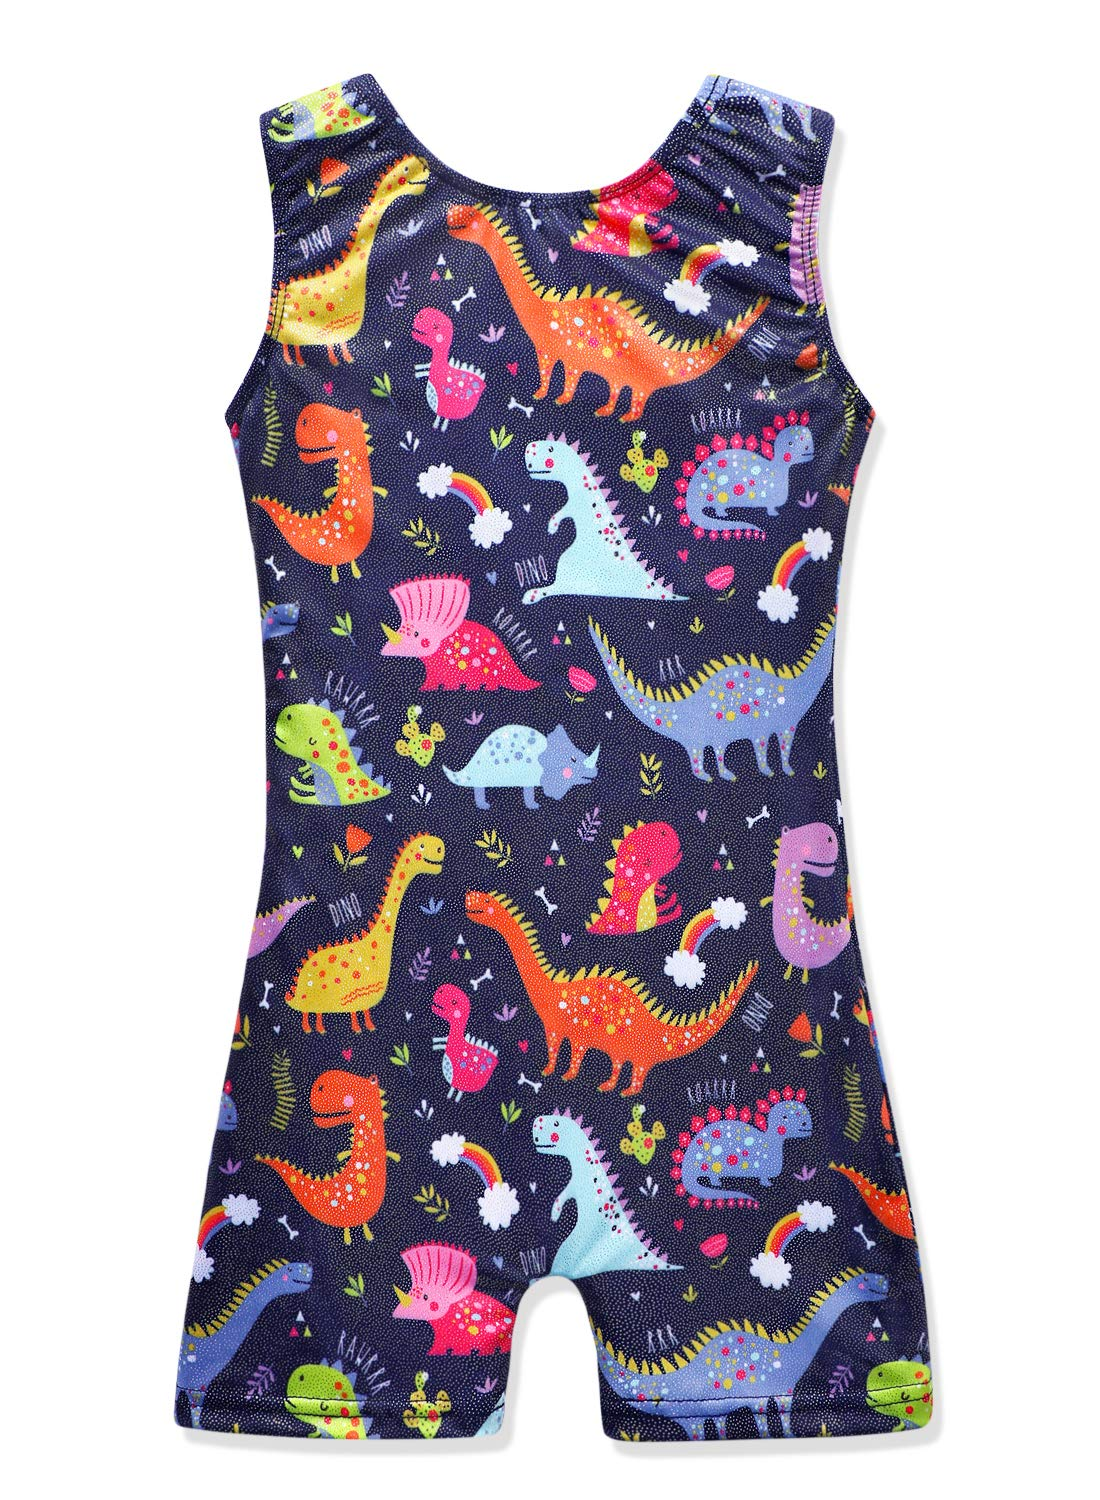 DAXIANG Unicorn Leotards for Girls Gymnastics Biketards Sparkle Unicorn Black and Blue (Dinosaur, 130(6-7Years)) by DAXIANG